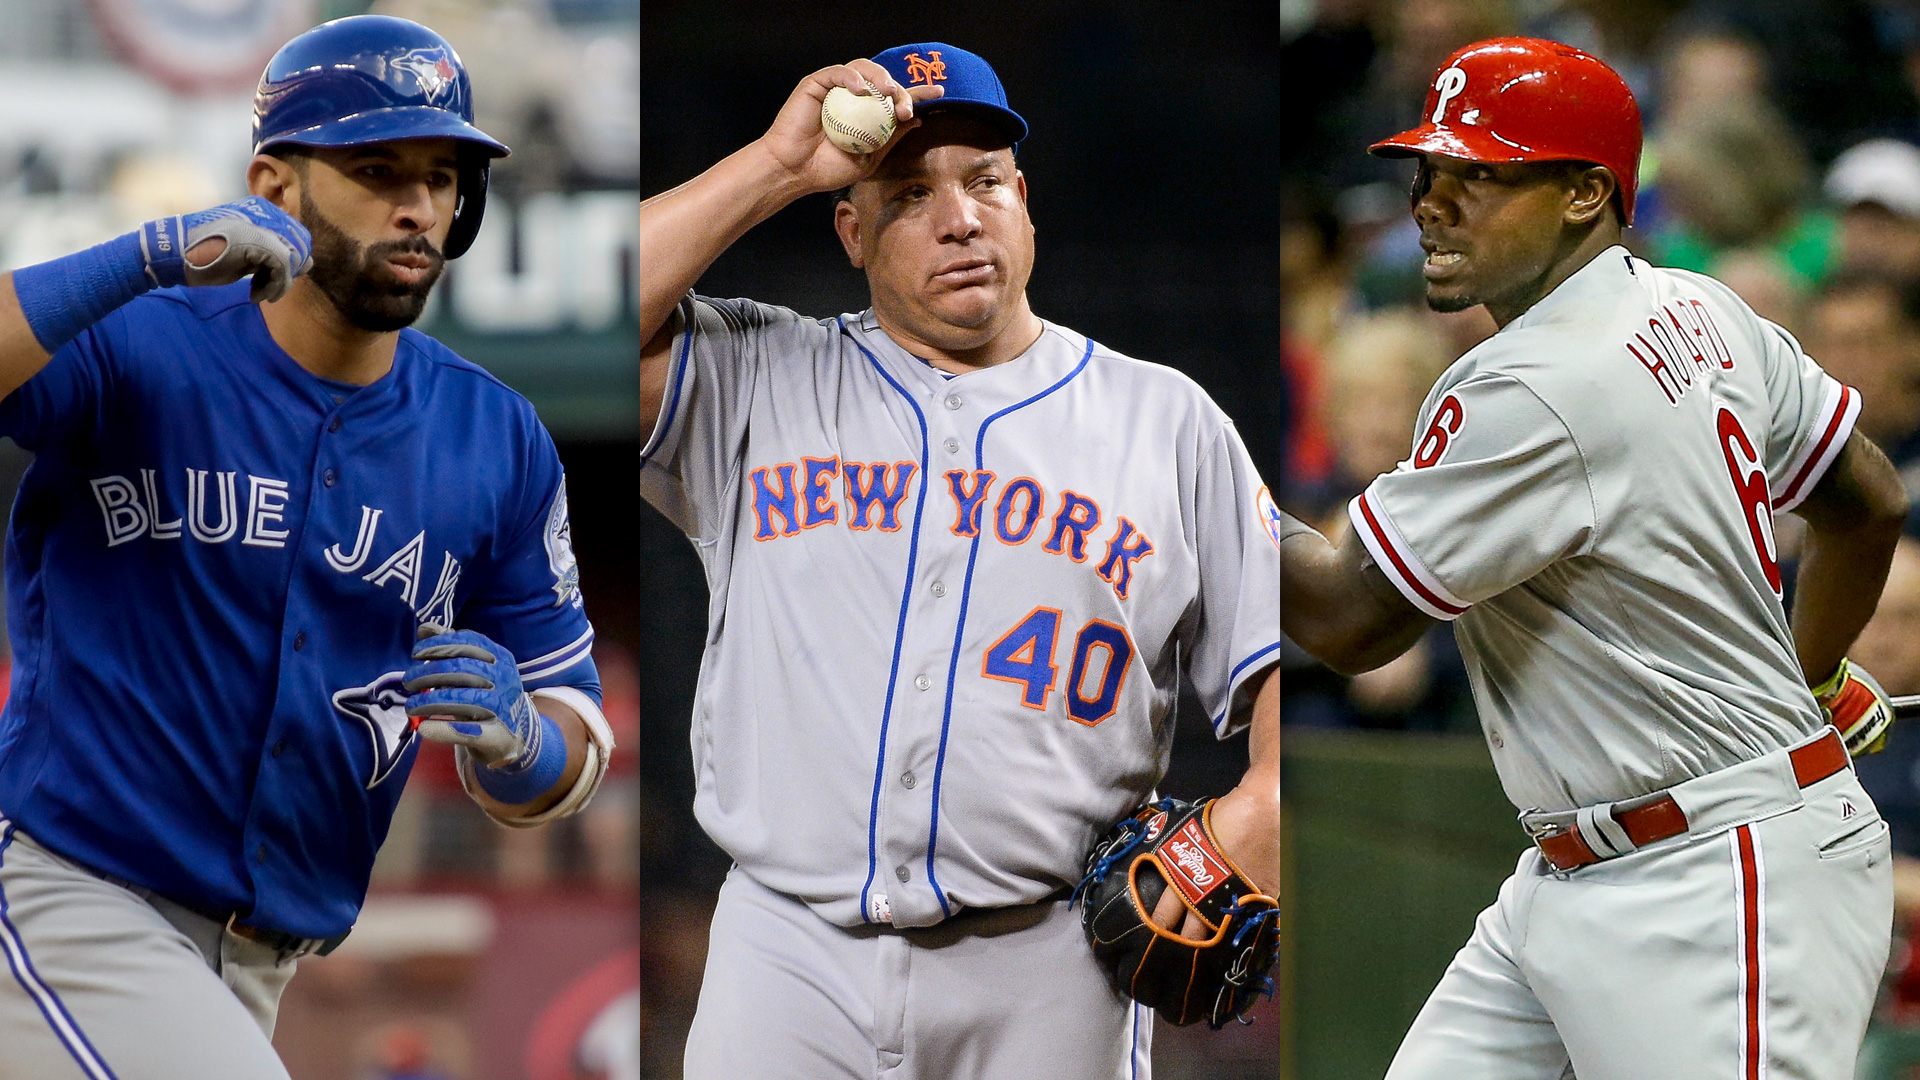 Split-jose-bautista-bartolo-colon-ryan-howard-110716-getty-ftrjpg_9ljo3qmvtyqp1xp2aajc397lb